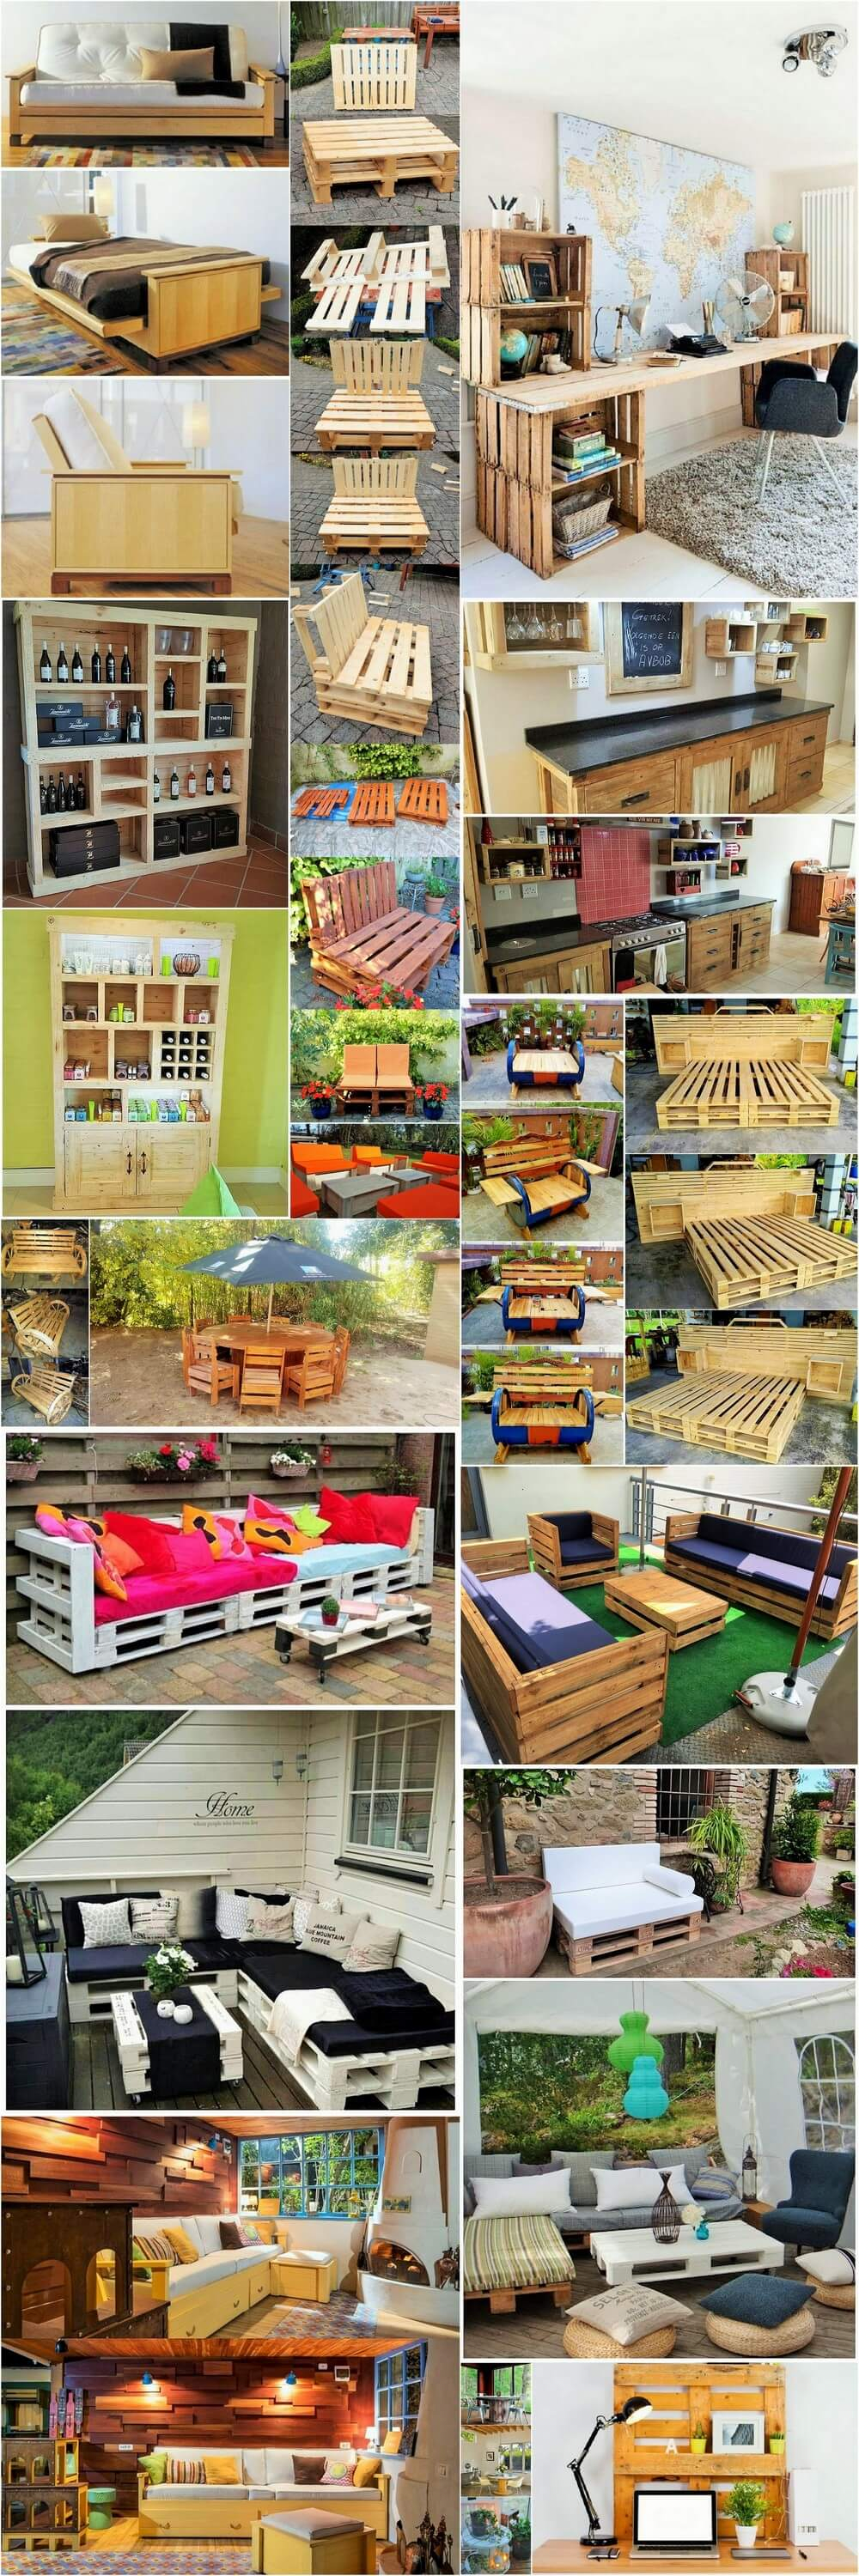 wooden-pallets-Diy-furniture-ideas